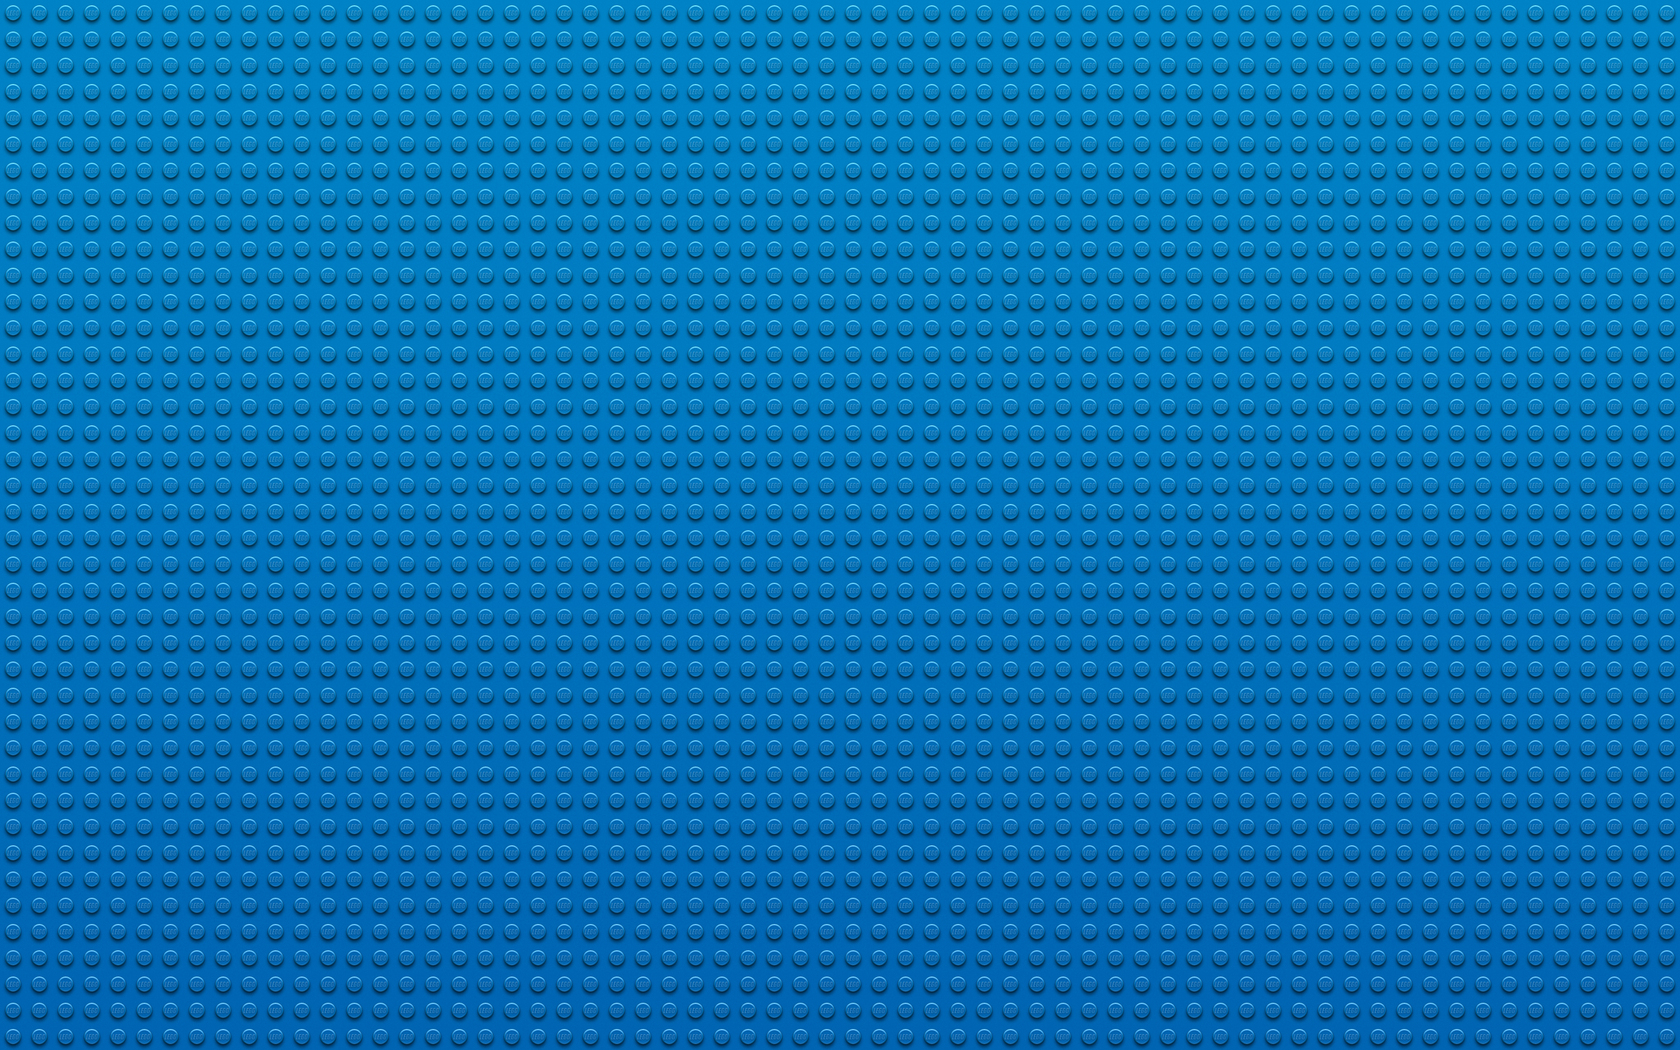 plastic material texture, plastic, download photo, LEGO blue plastic texture background